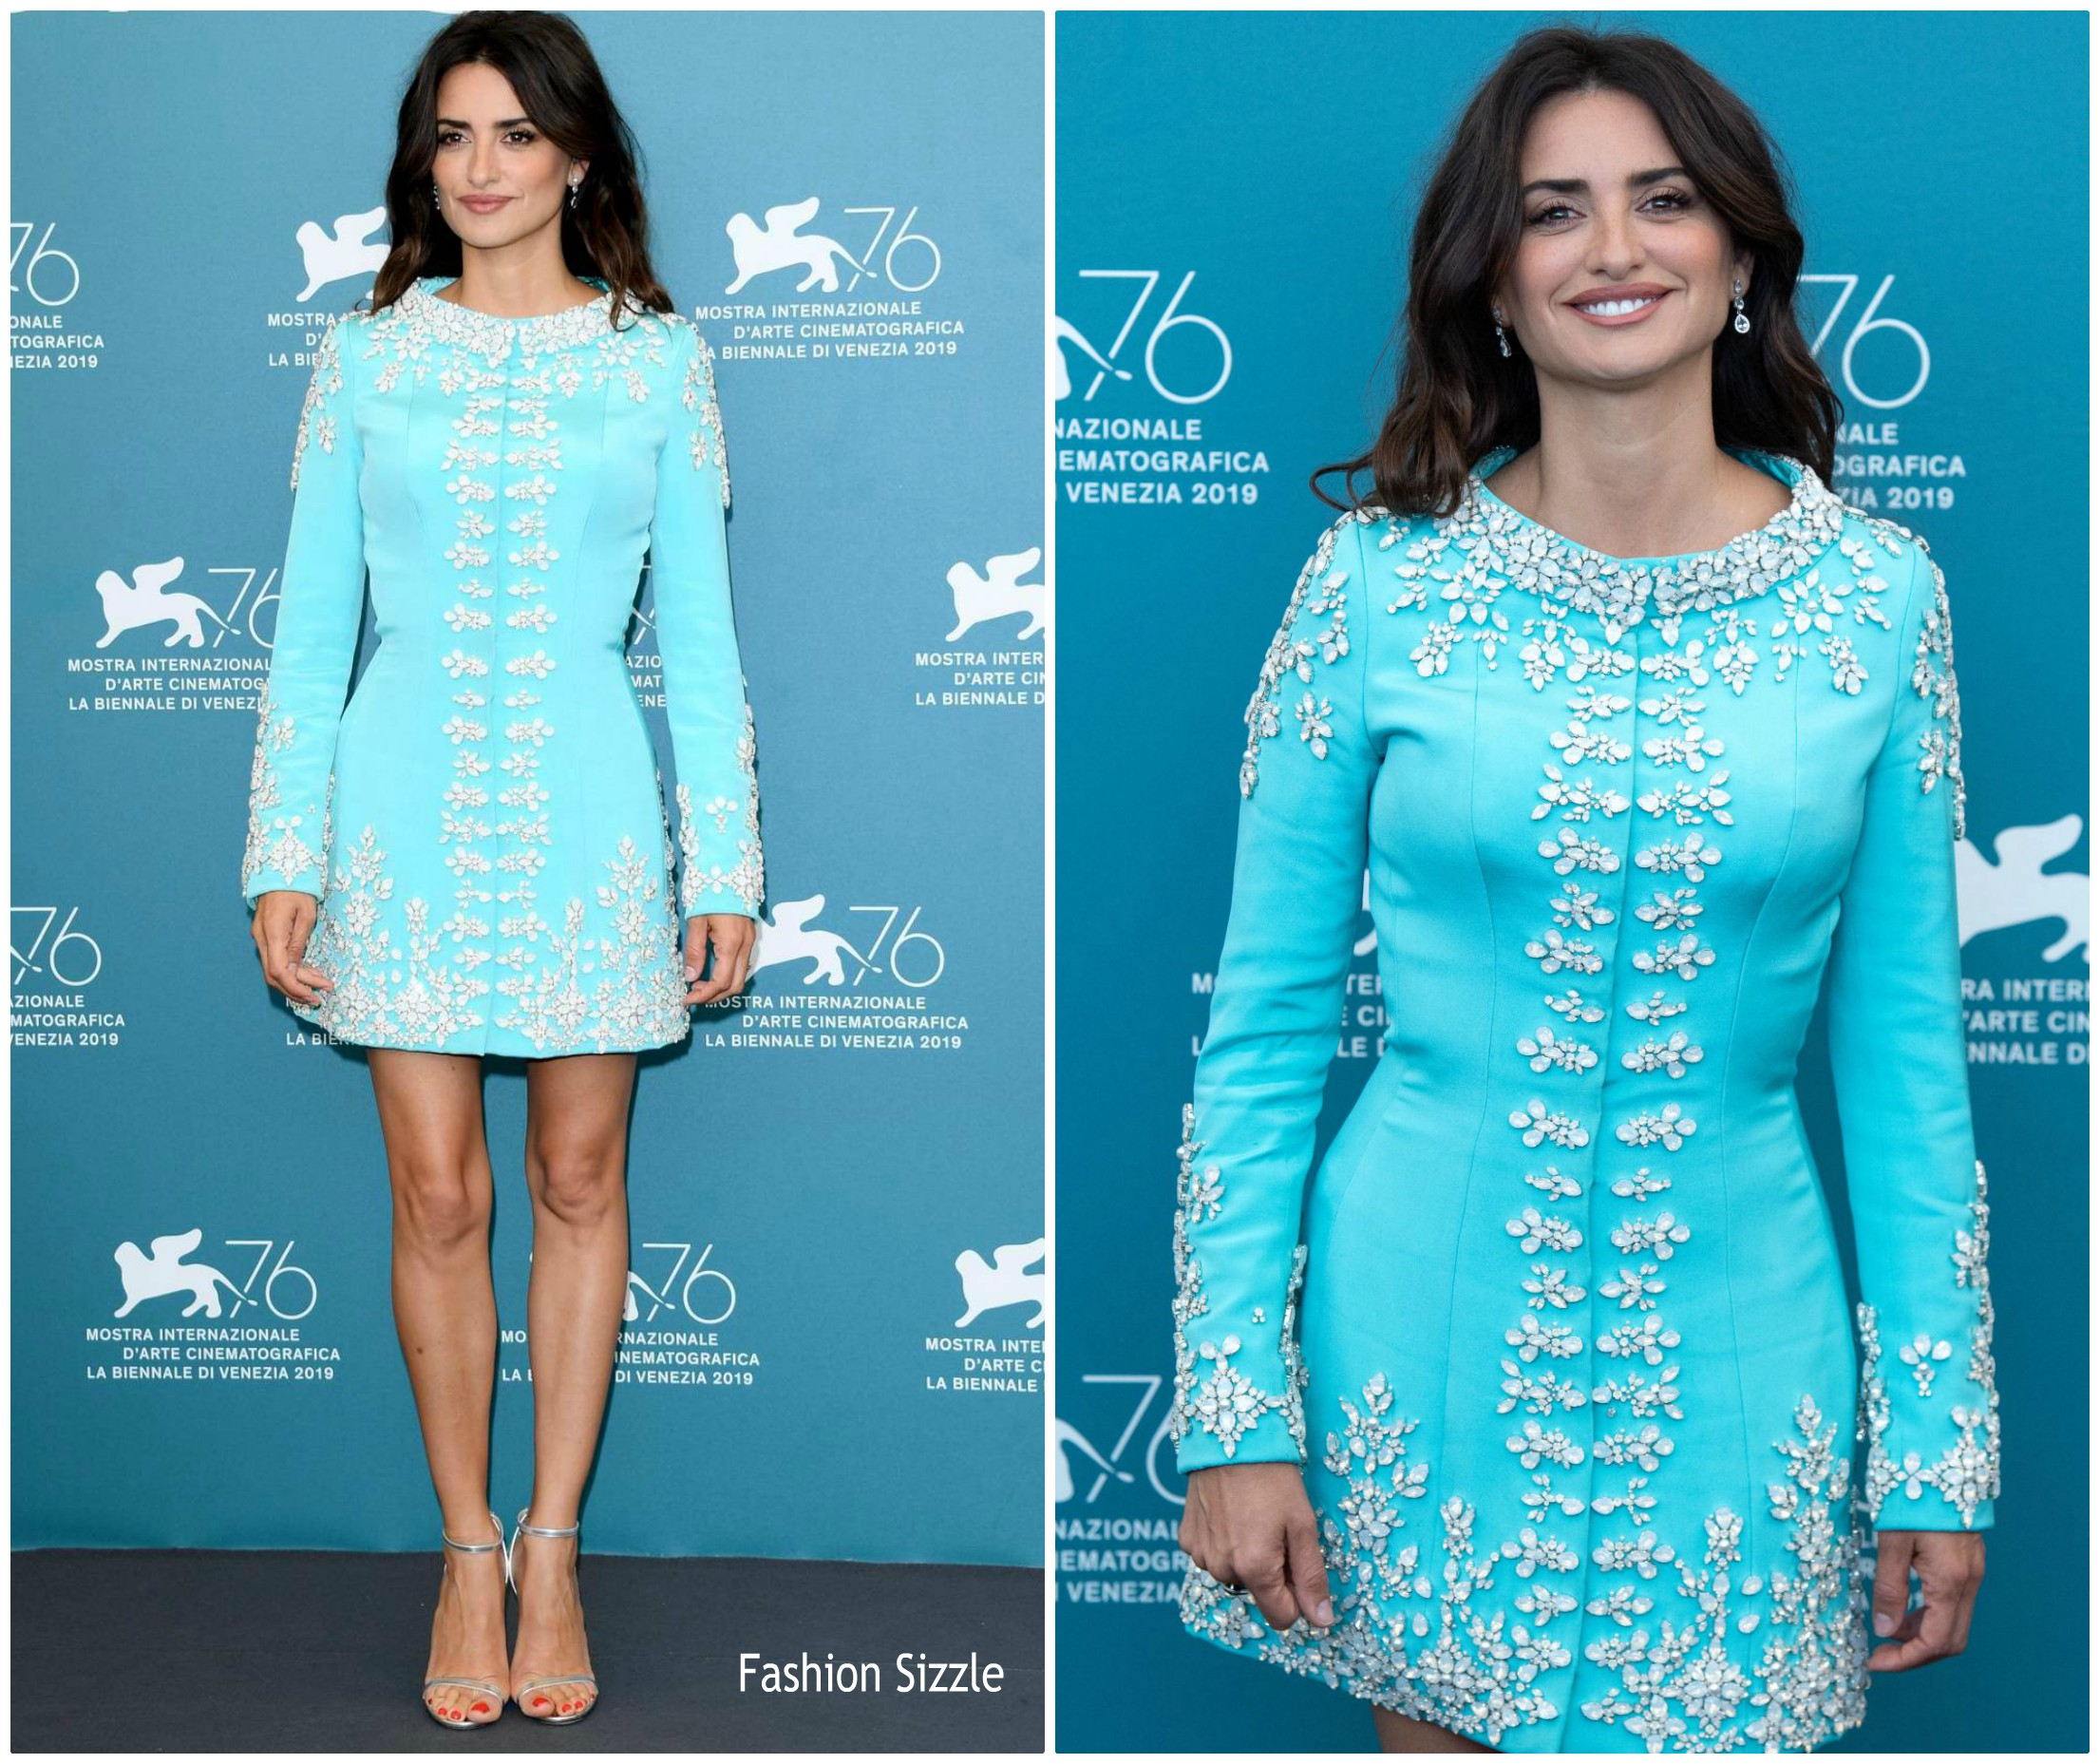 penelope-cruz-in-ralph-russo-couture-wasp-network-venice- film-festival-photocall